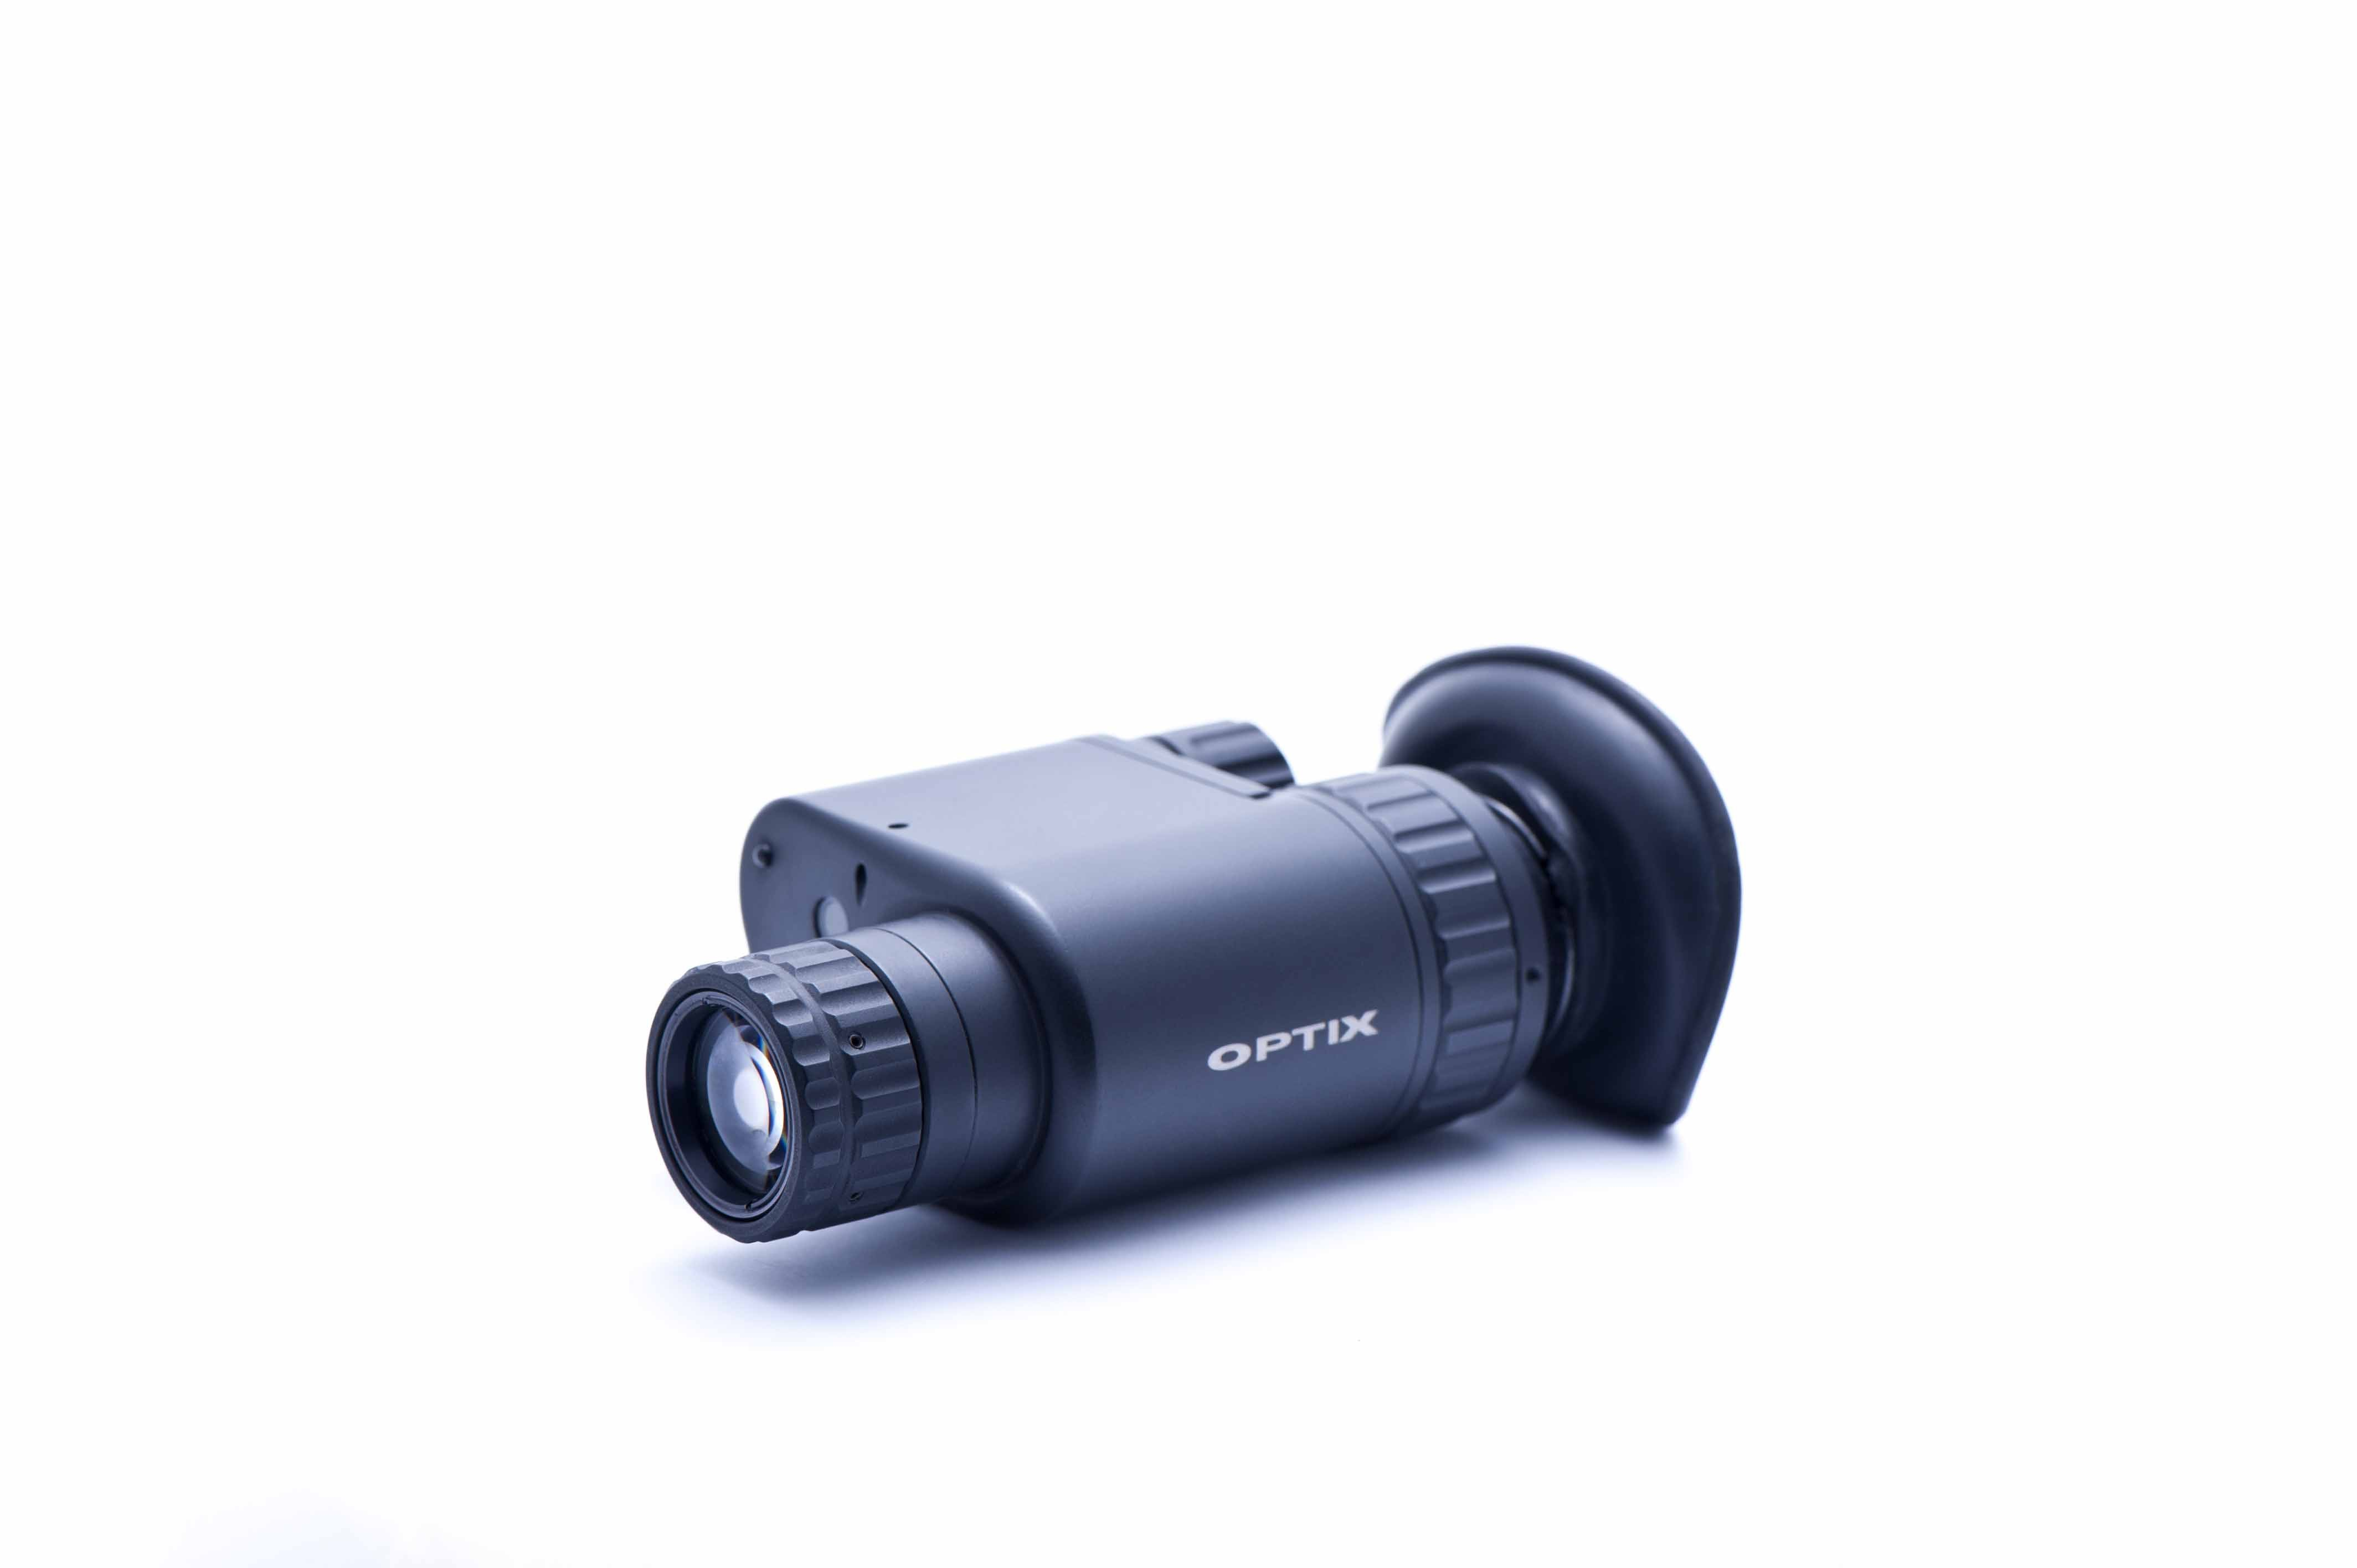 night-vision-optics-Boarhunter-hunting-optics-lovna-optika